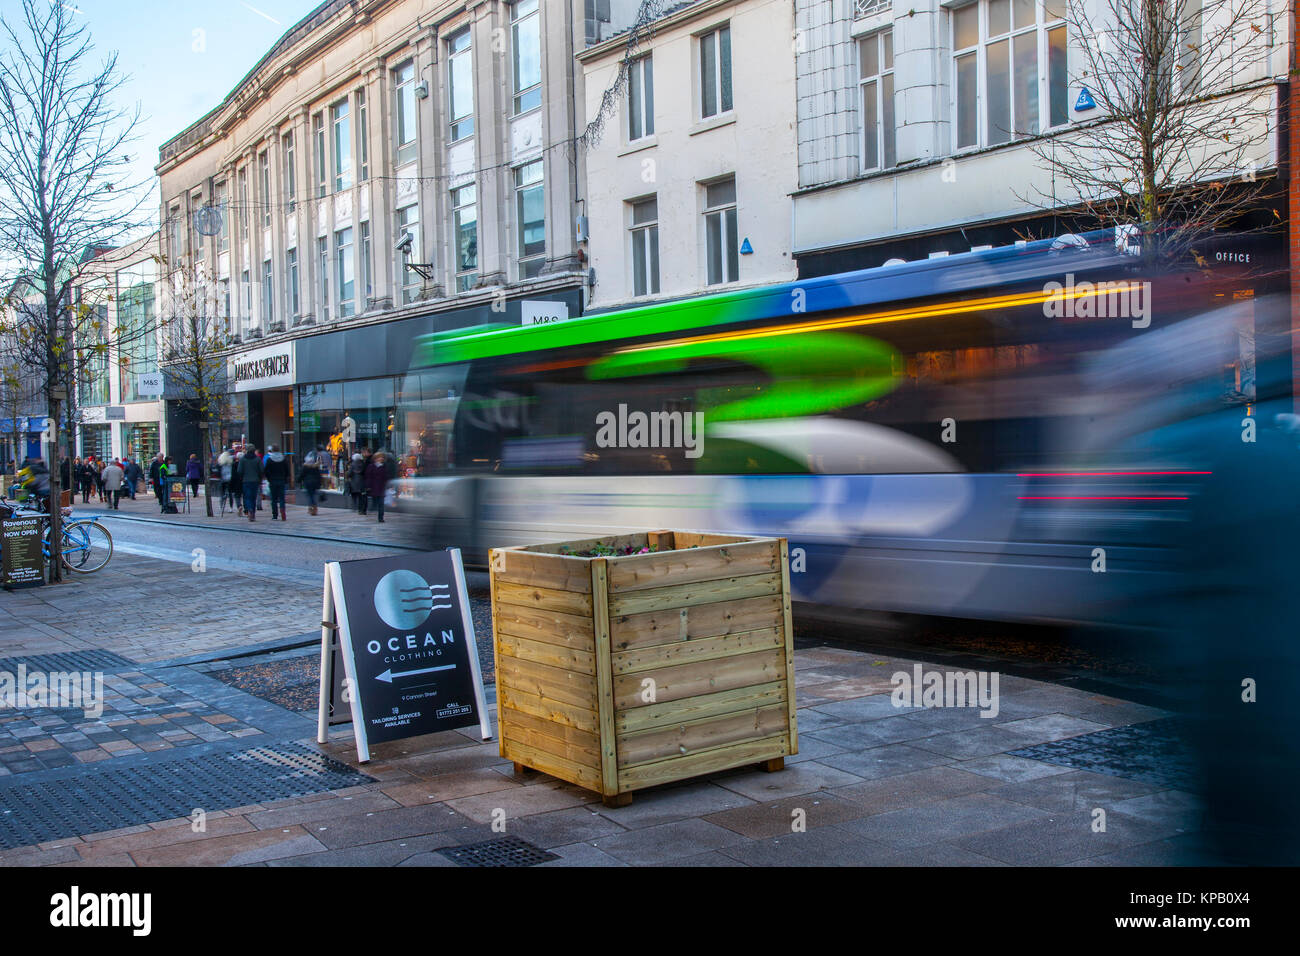 Preston, Lancashire, UK. 15th Dec, 2017. Security Alert. Anti-Terrorist devices, or vehicle buffers have been installed - Stock Image